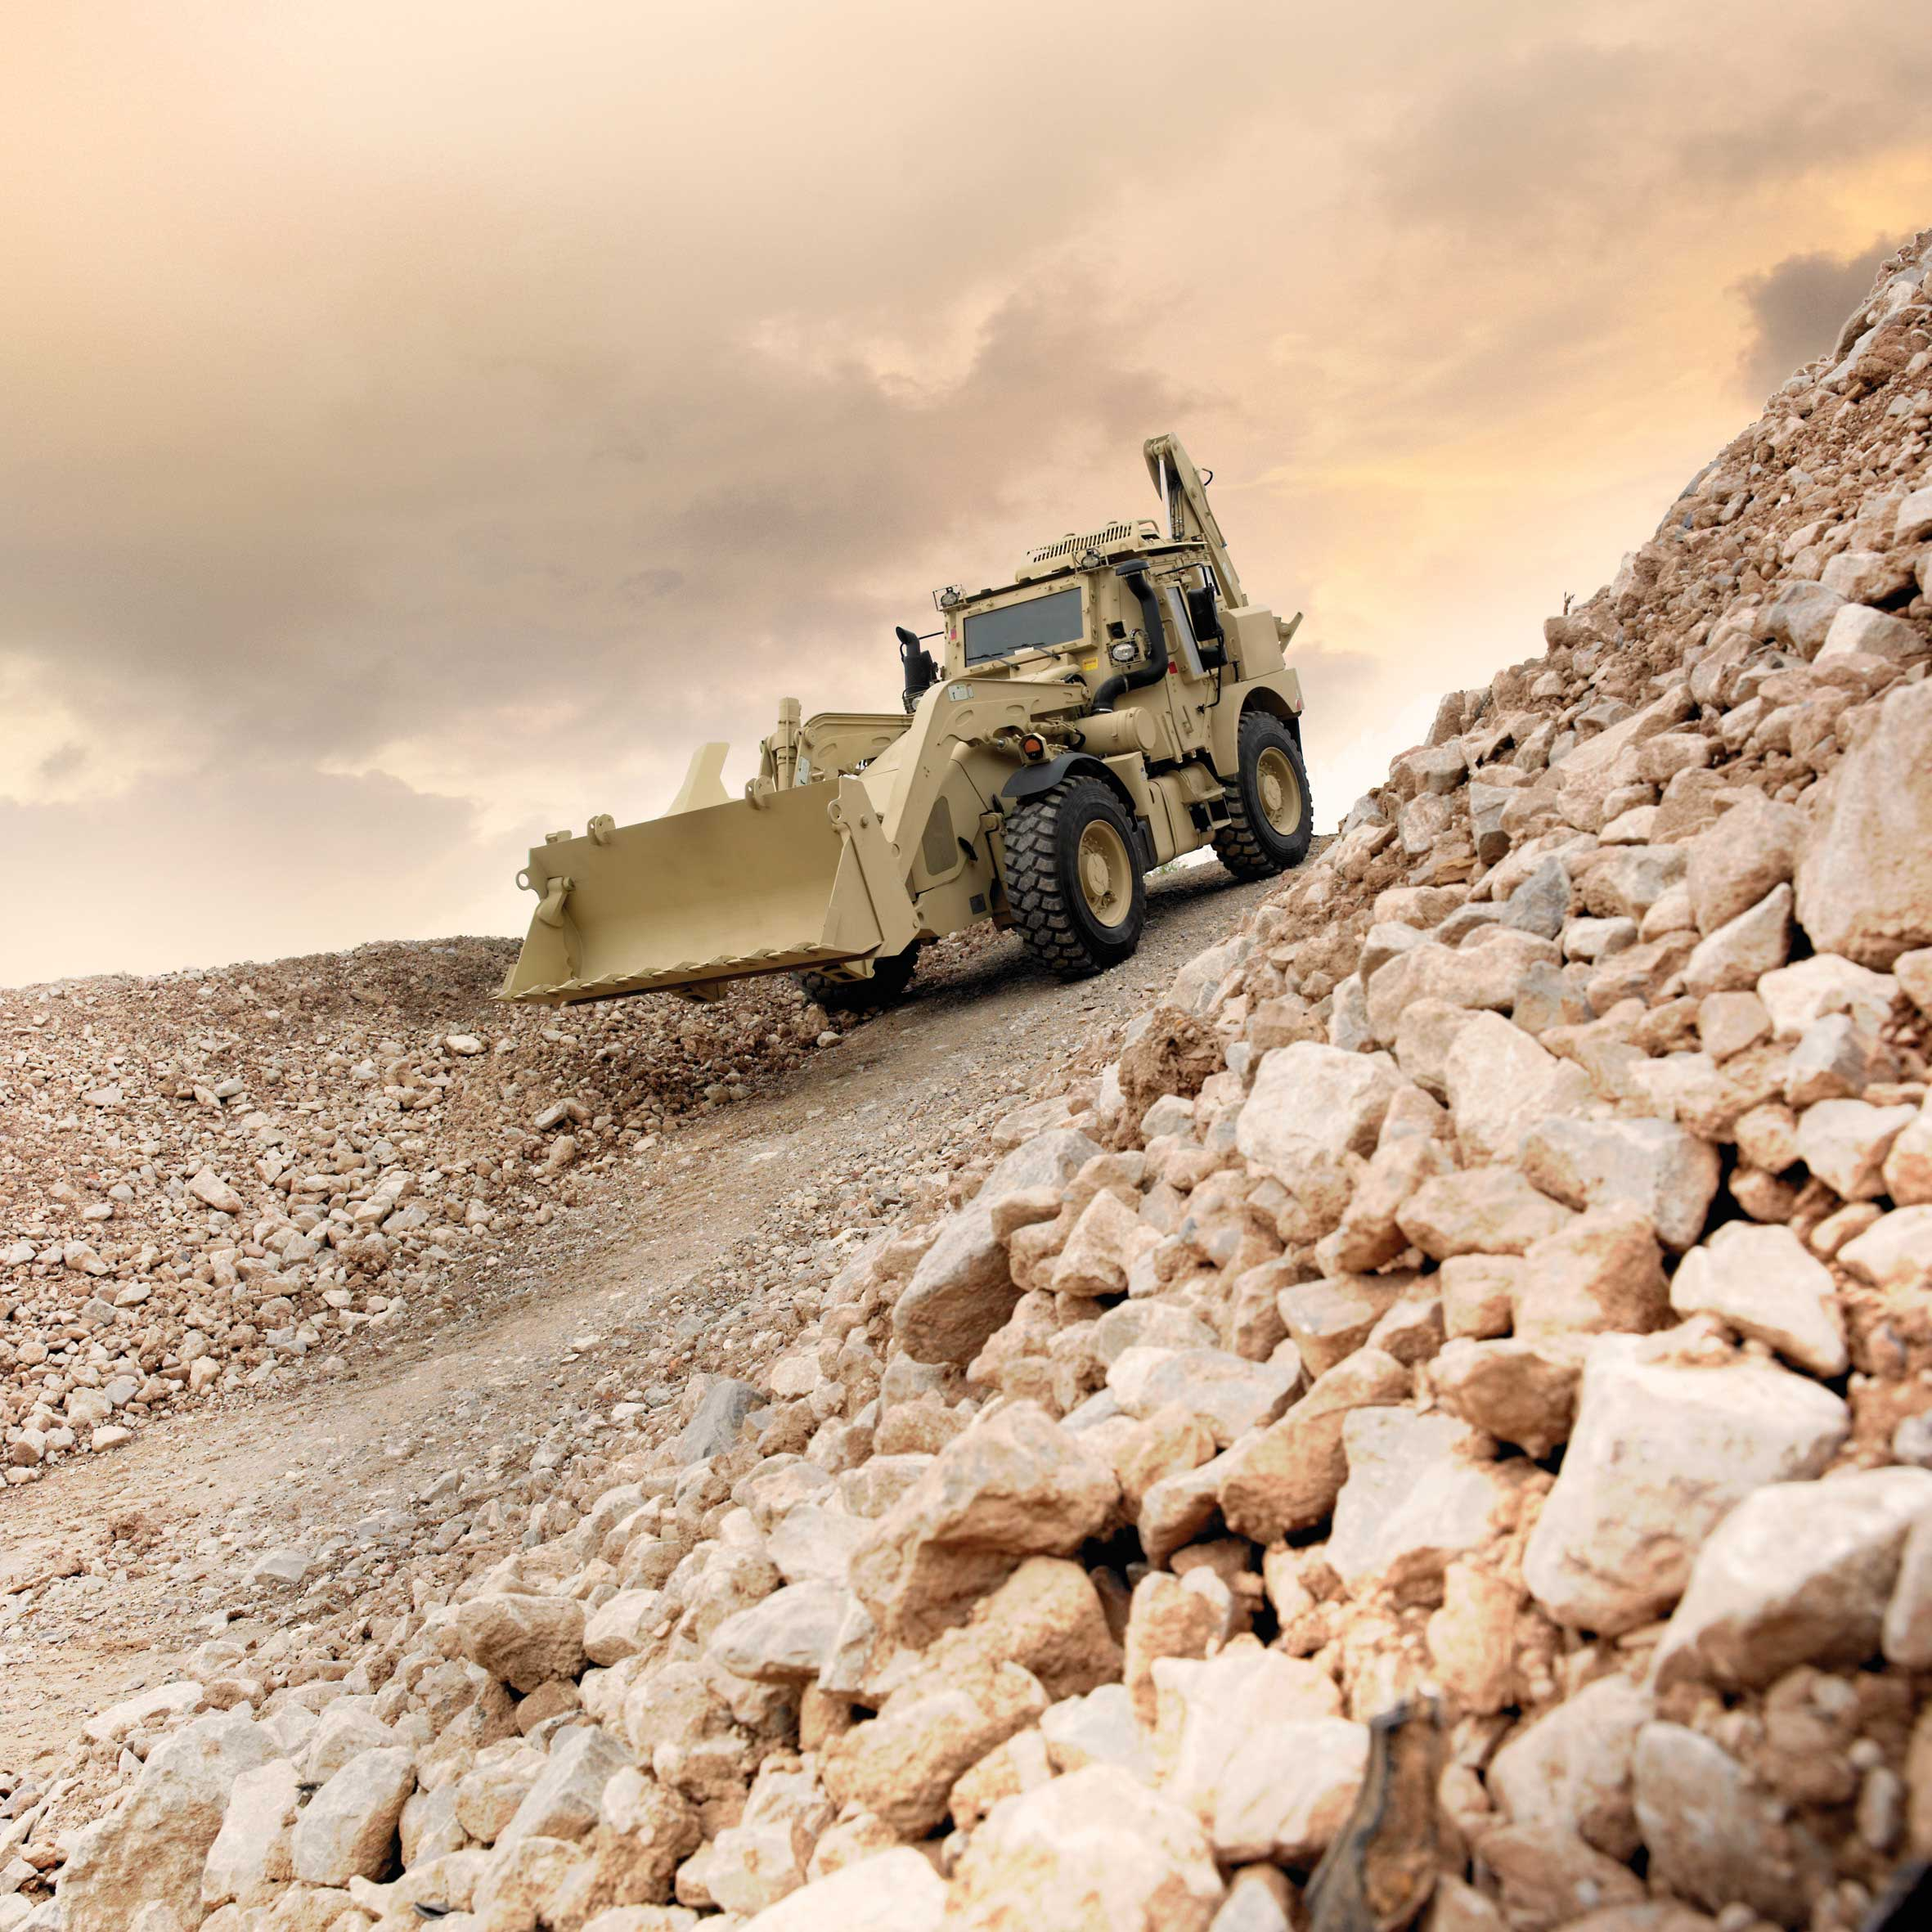 JCB  HMEE is used to perform a range of military and disaster relief missions